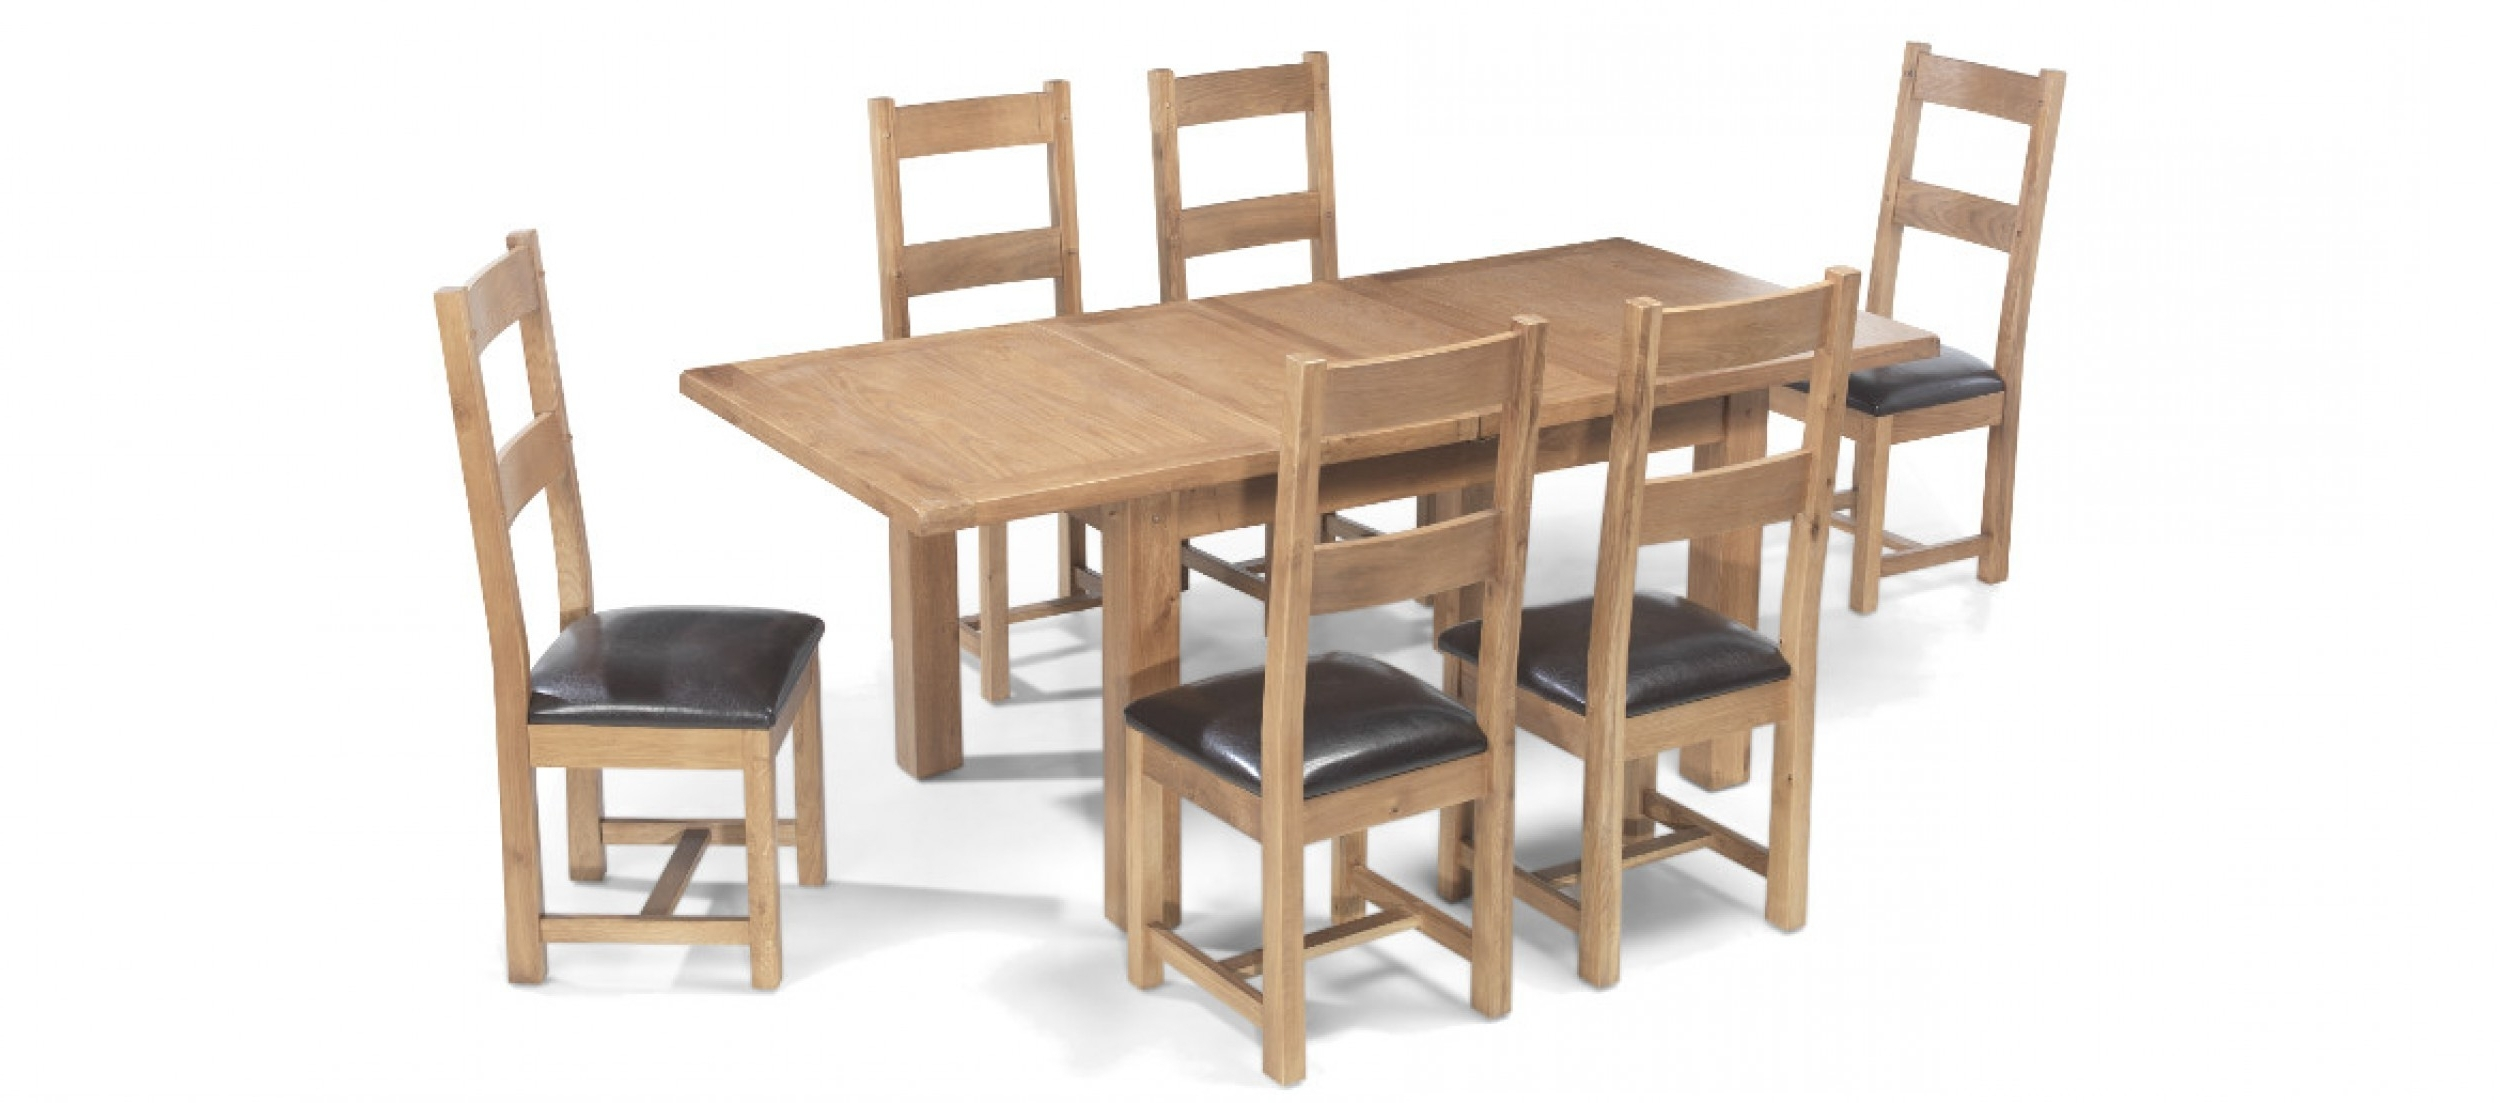 Quercus Throughout Extending Dining Tables And 6 Chairs (View 3 of 25)